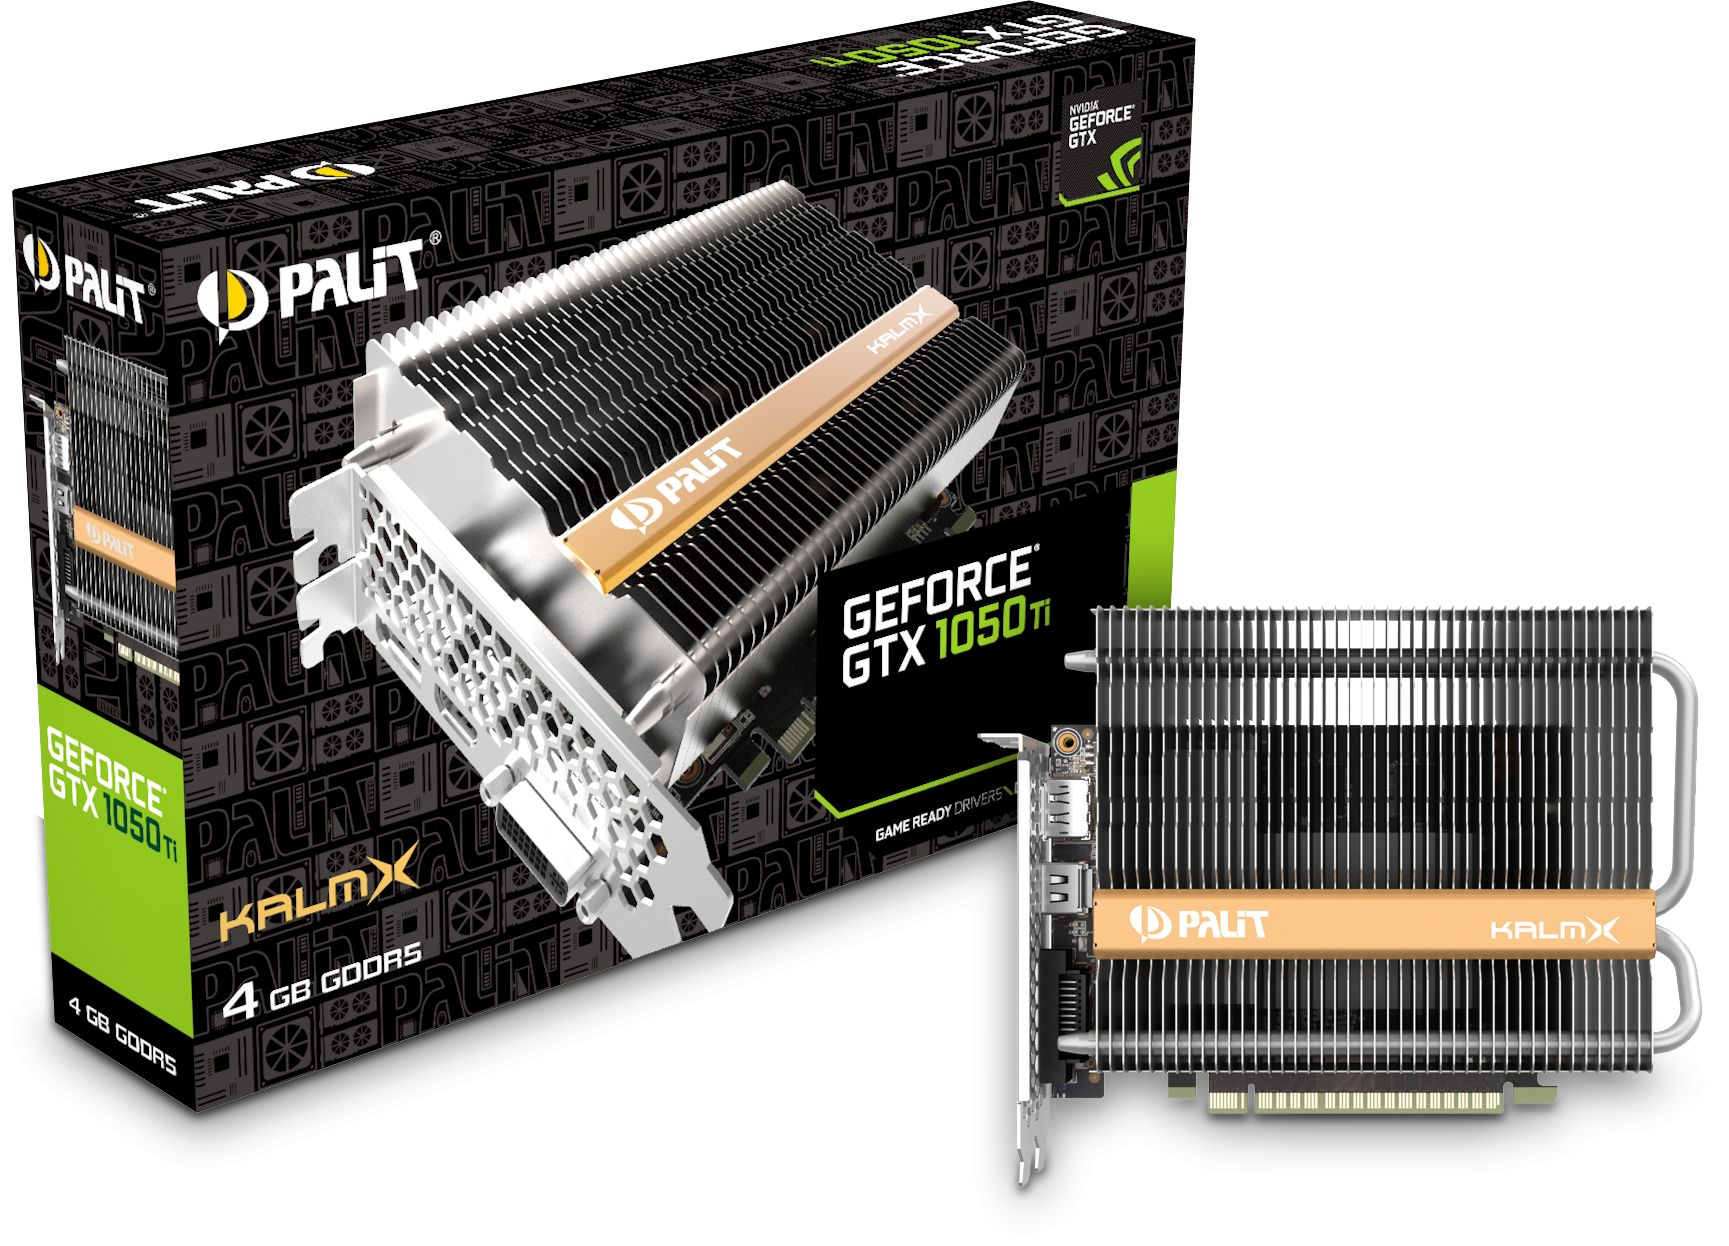 Palit GeForce GTX 1050 Ti gives the gaming horsepower to take on today's  most demanding titles in full 1080p HD@60 FPS.